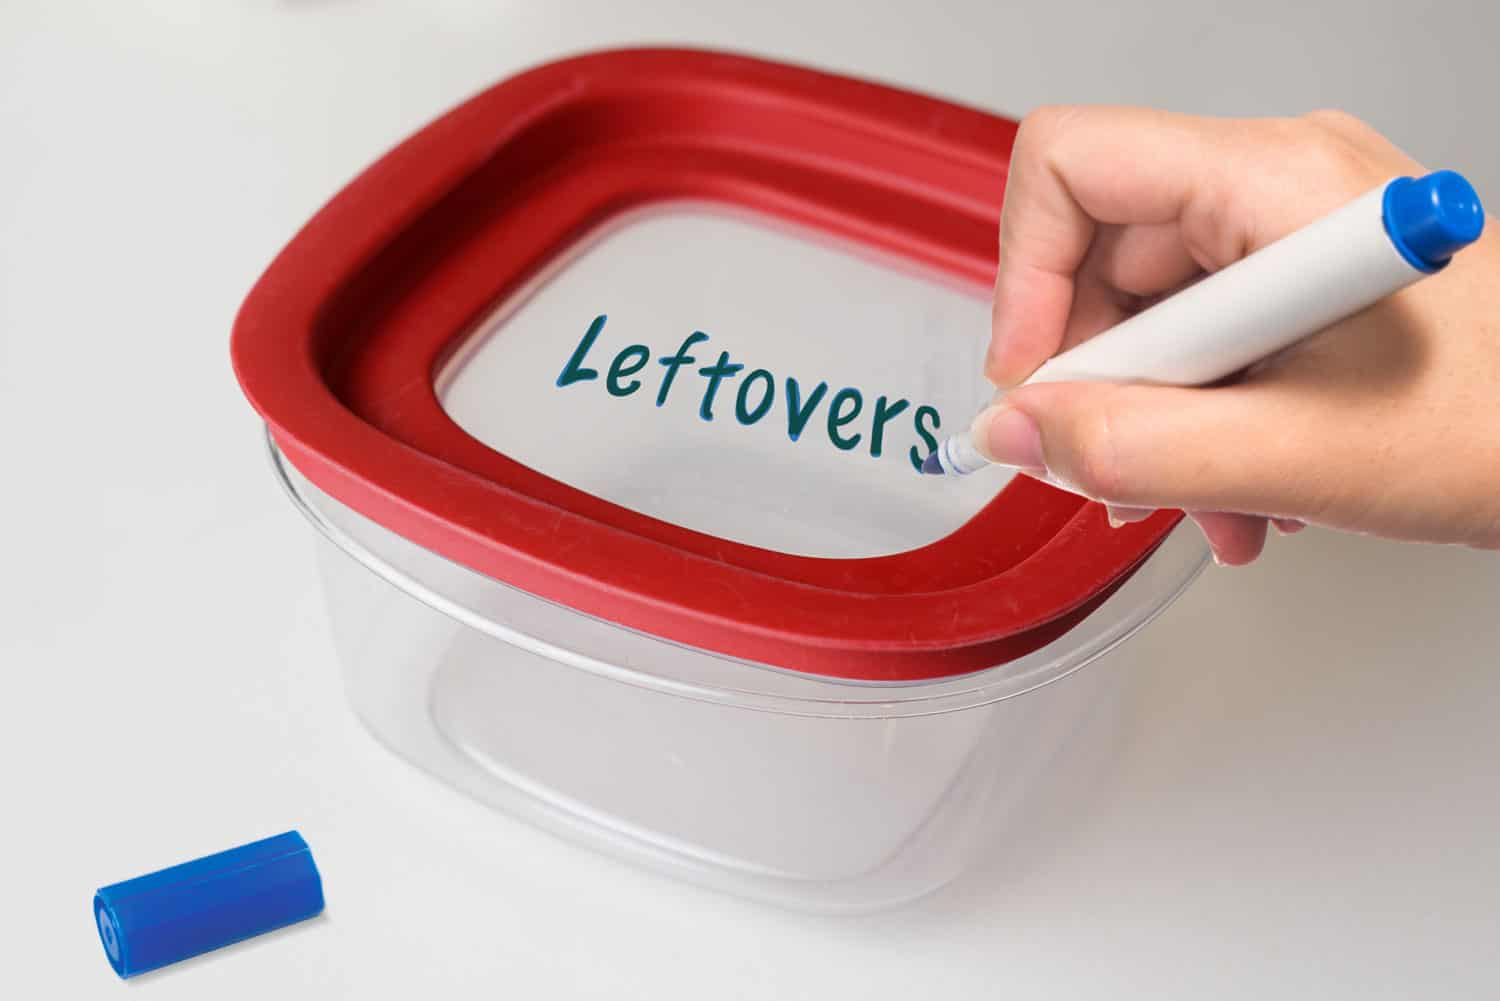 writing leftovers on plastic container with permanent marker